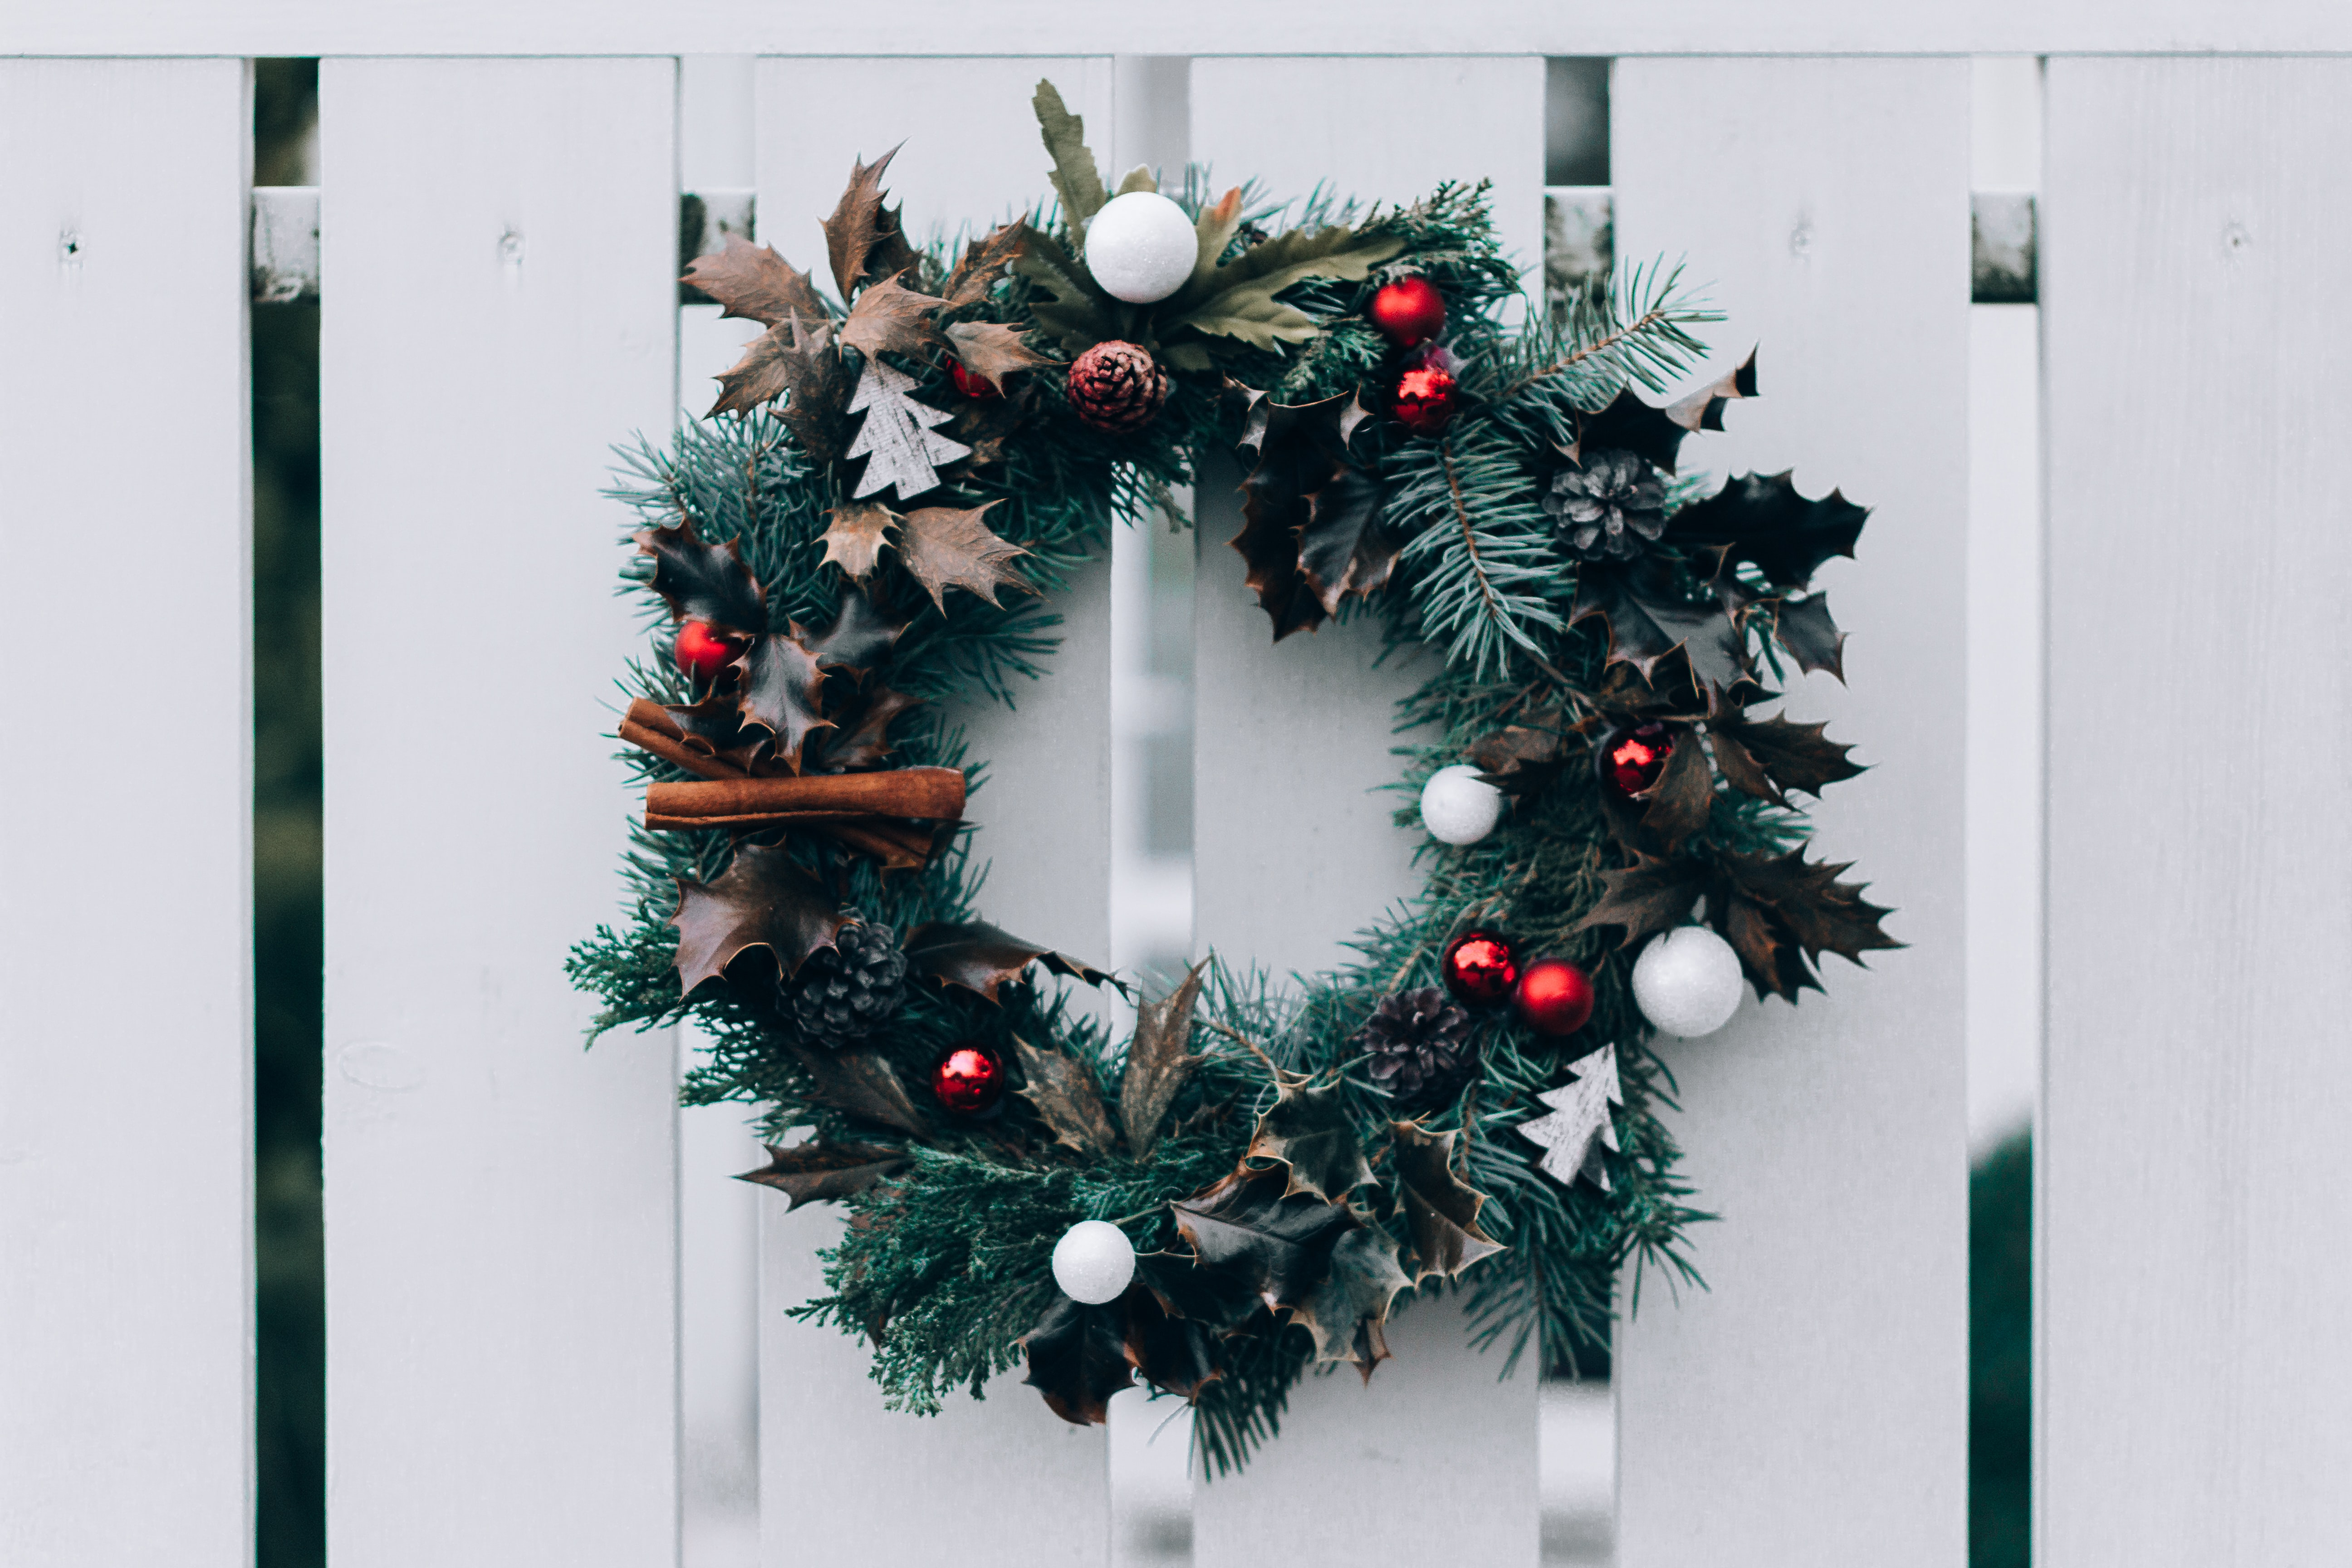 green and white Christmas wreath on wall